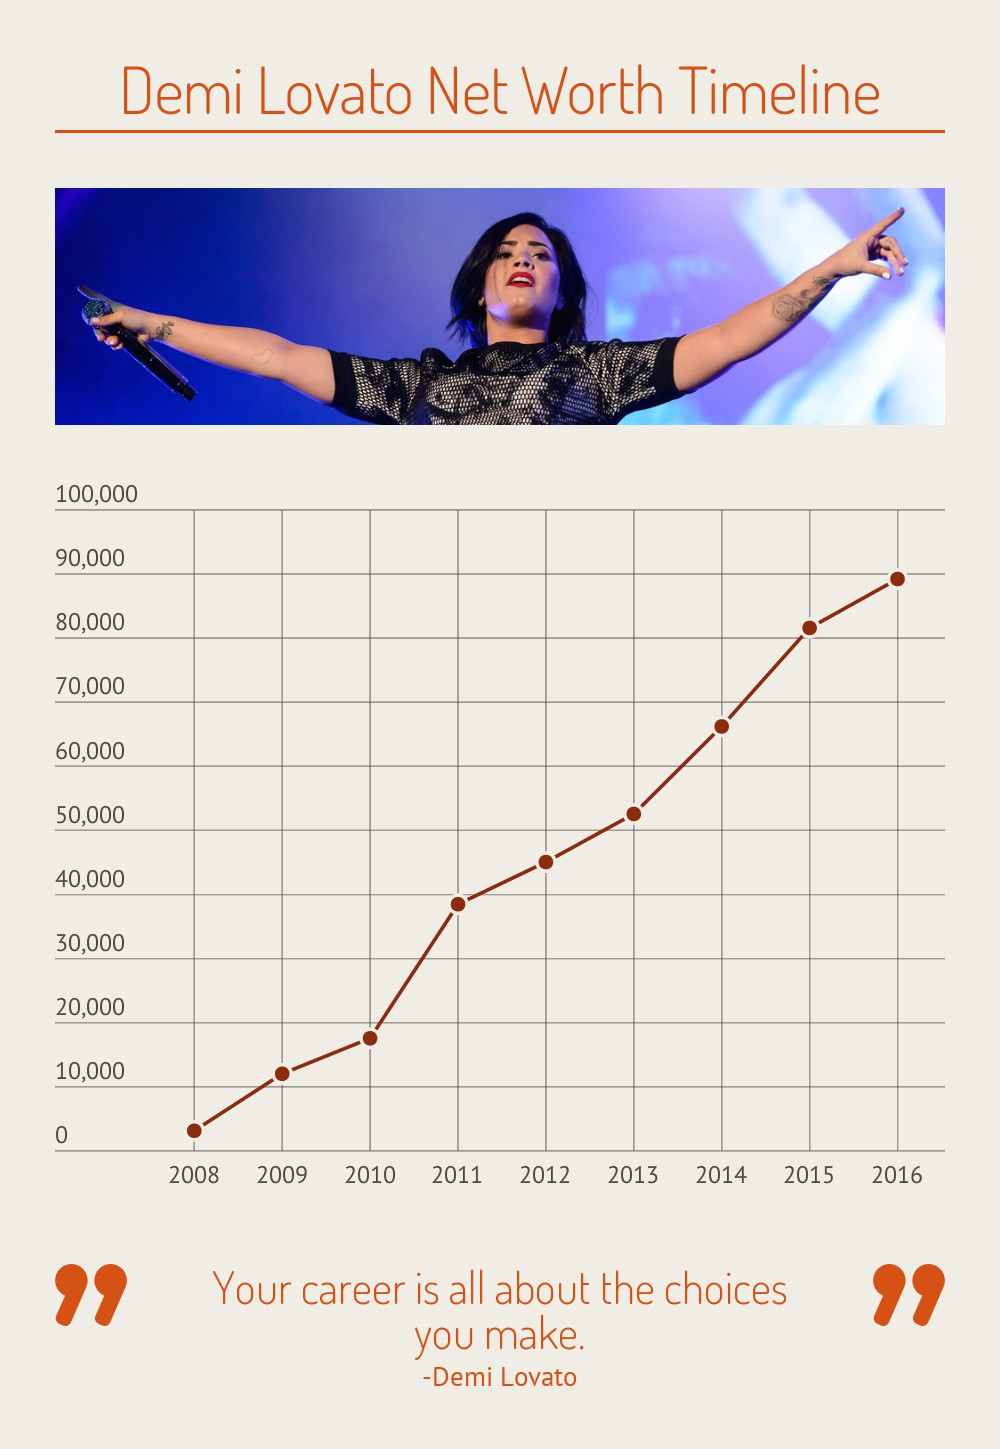 Demi Lovato net worth timeline